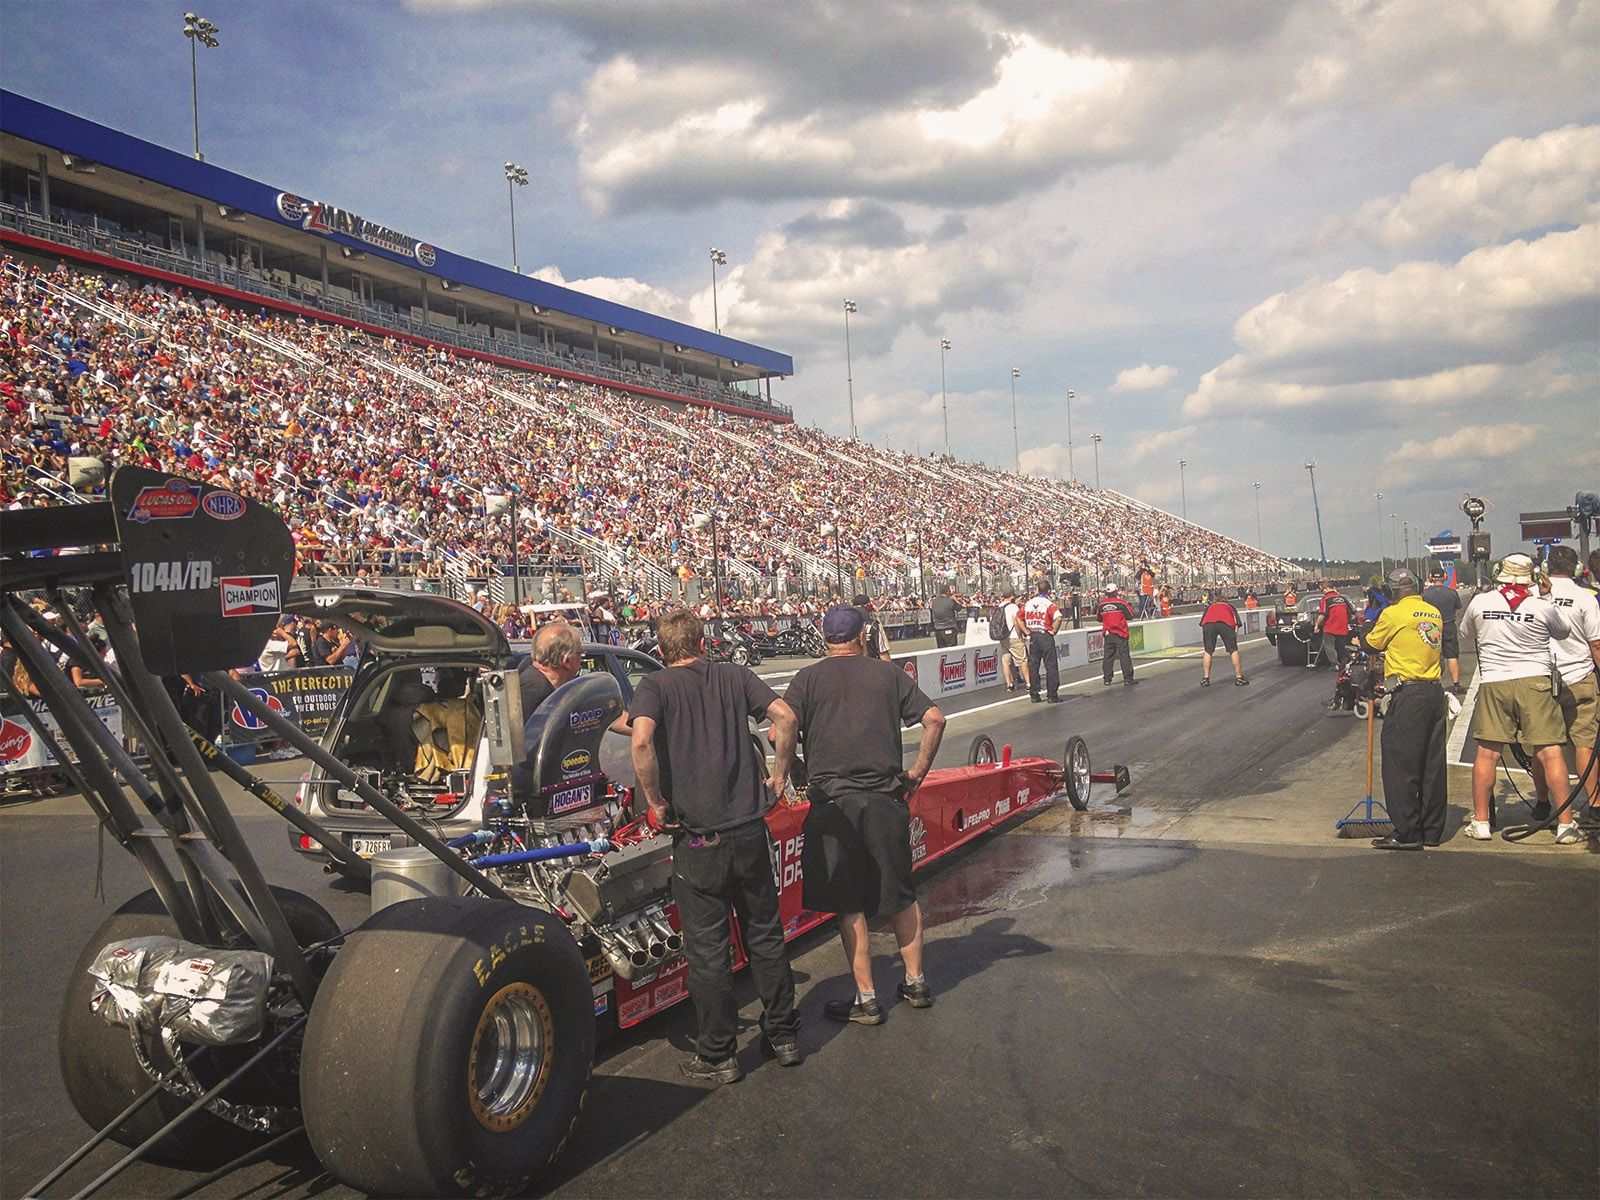 Corey Michalek patiently awaits the final round inside the Champion Spark Plugs / Dreher Motorsports A/fuel dragster in front of a packed house at ZMax Dragway.